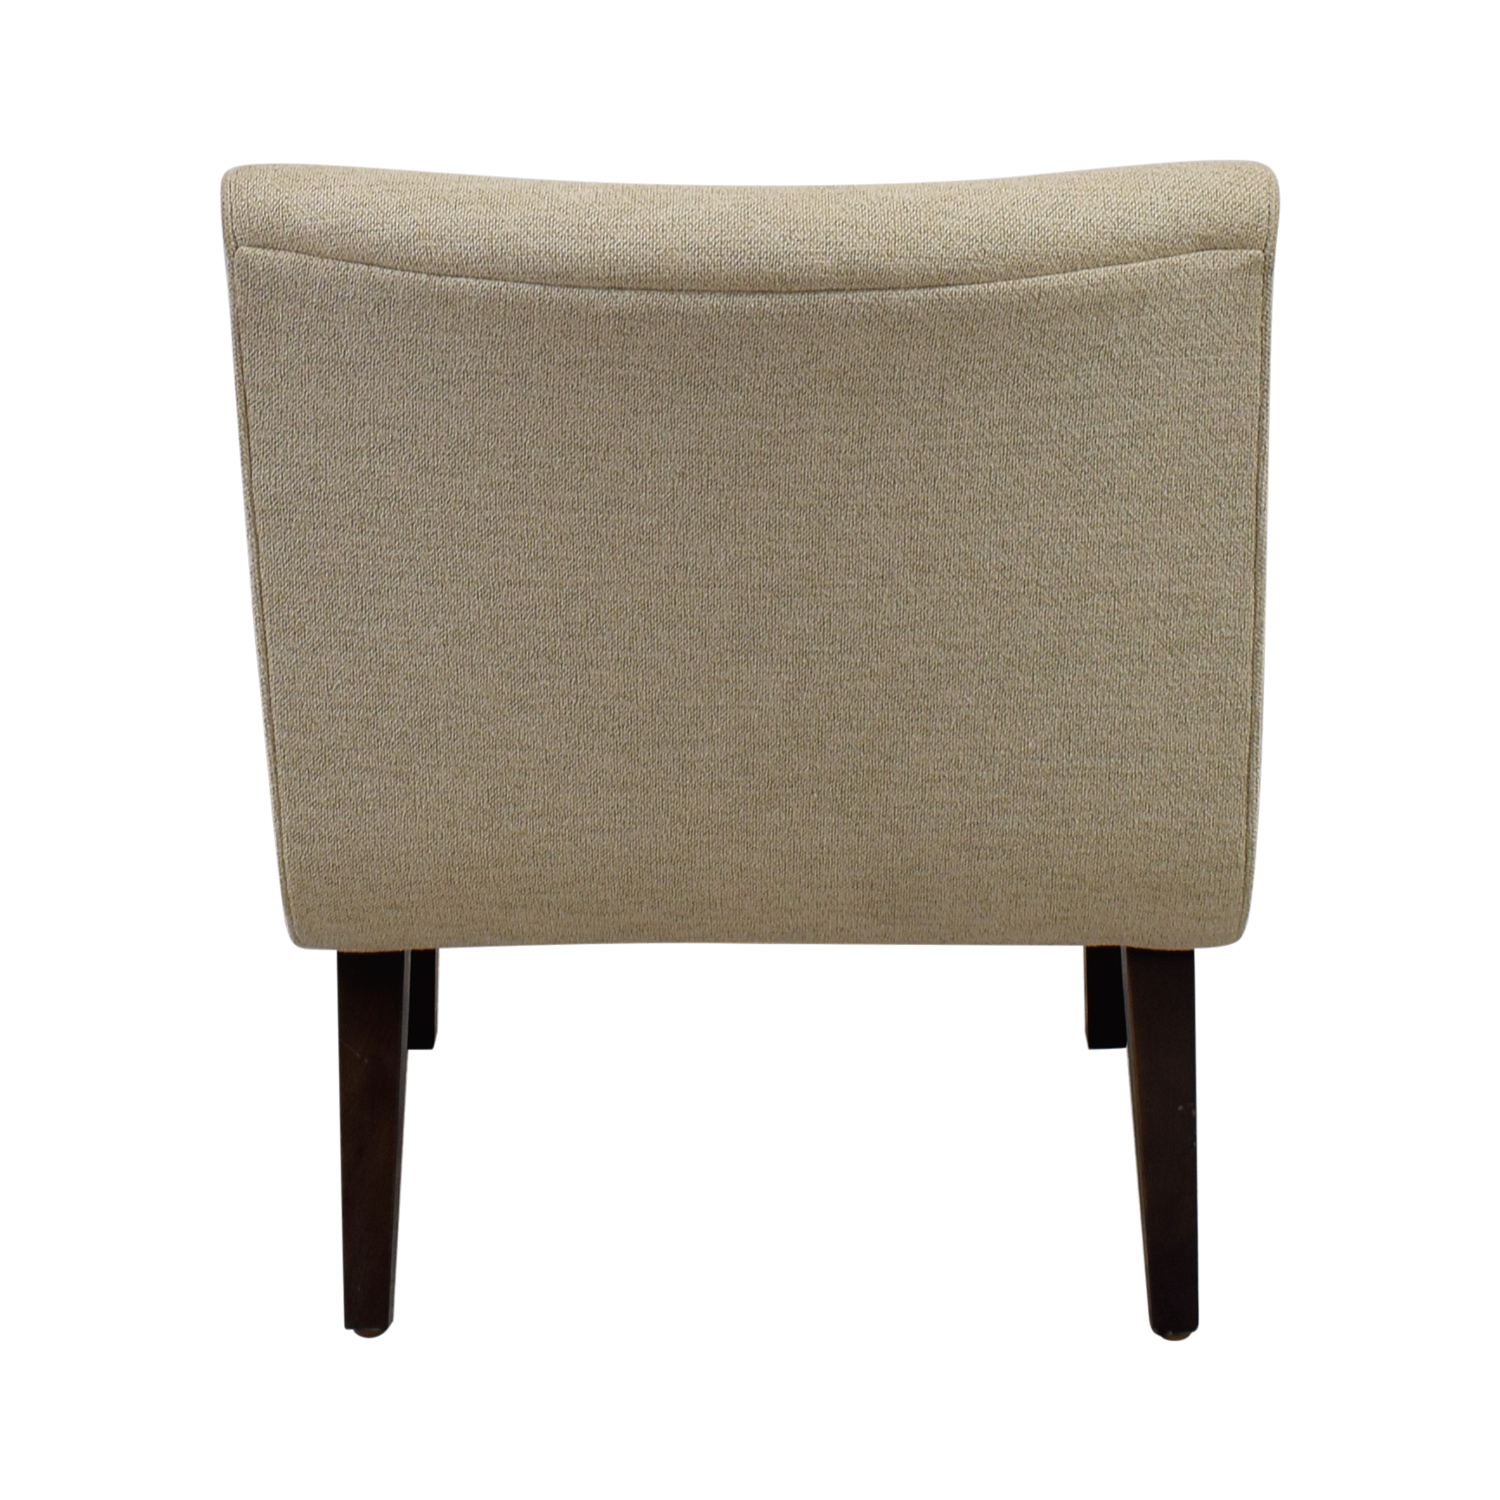 Room & Board Room & Board Delia Tatum Natural Accent Chair dimensions